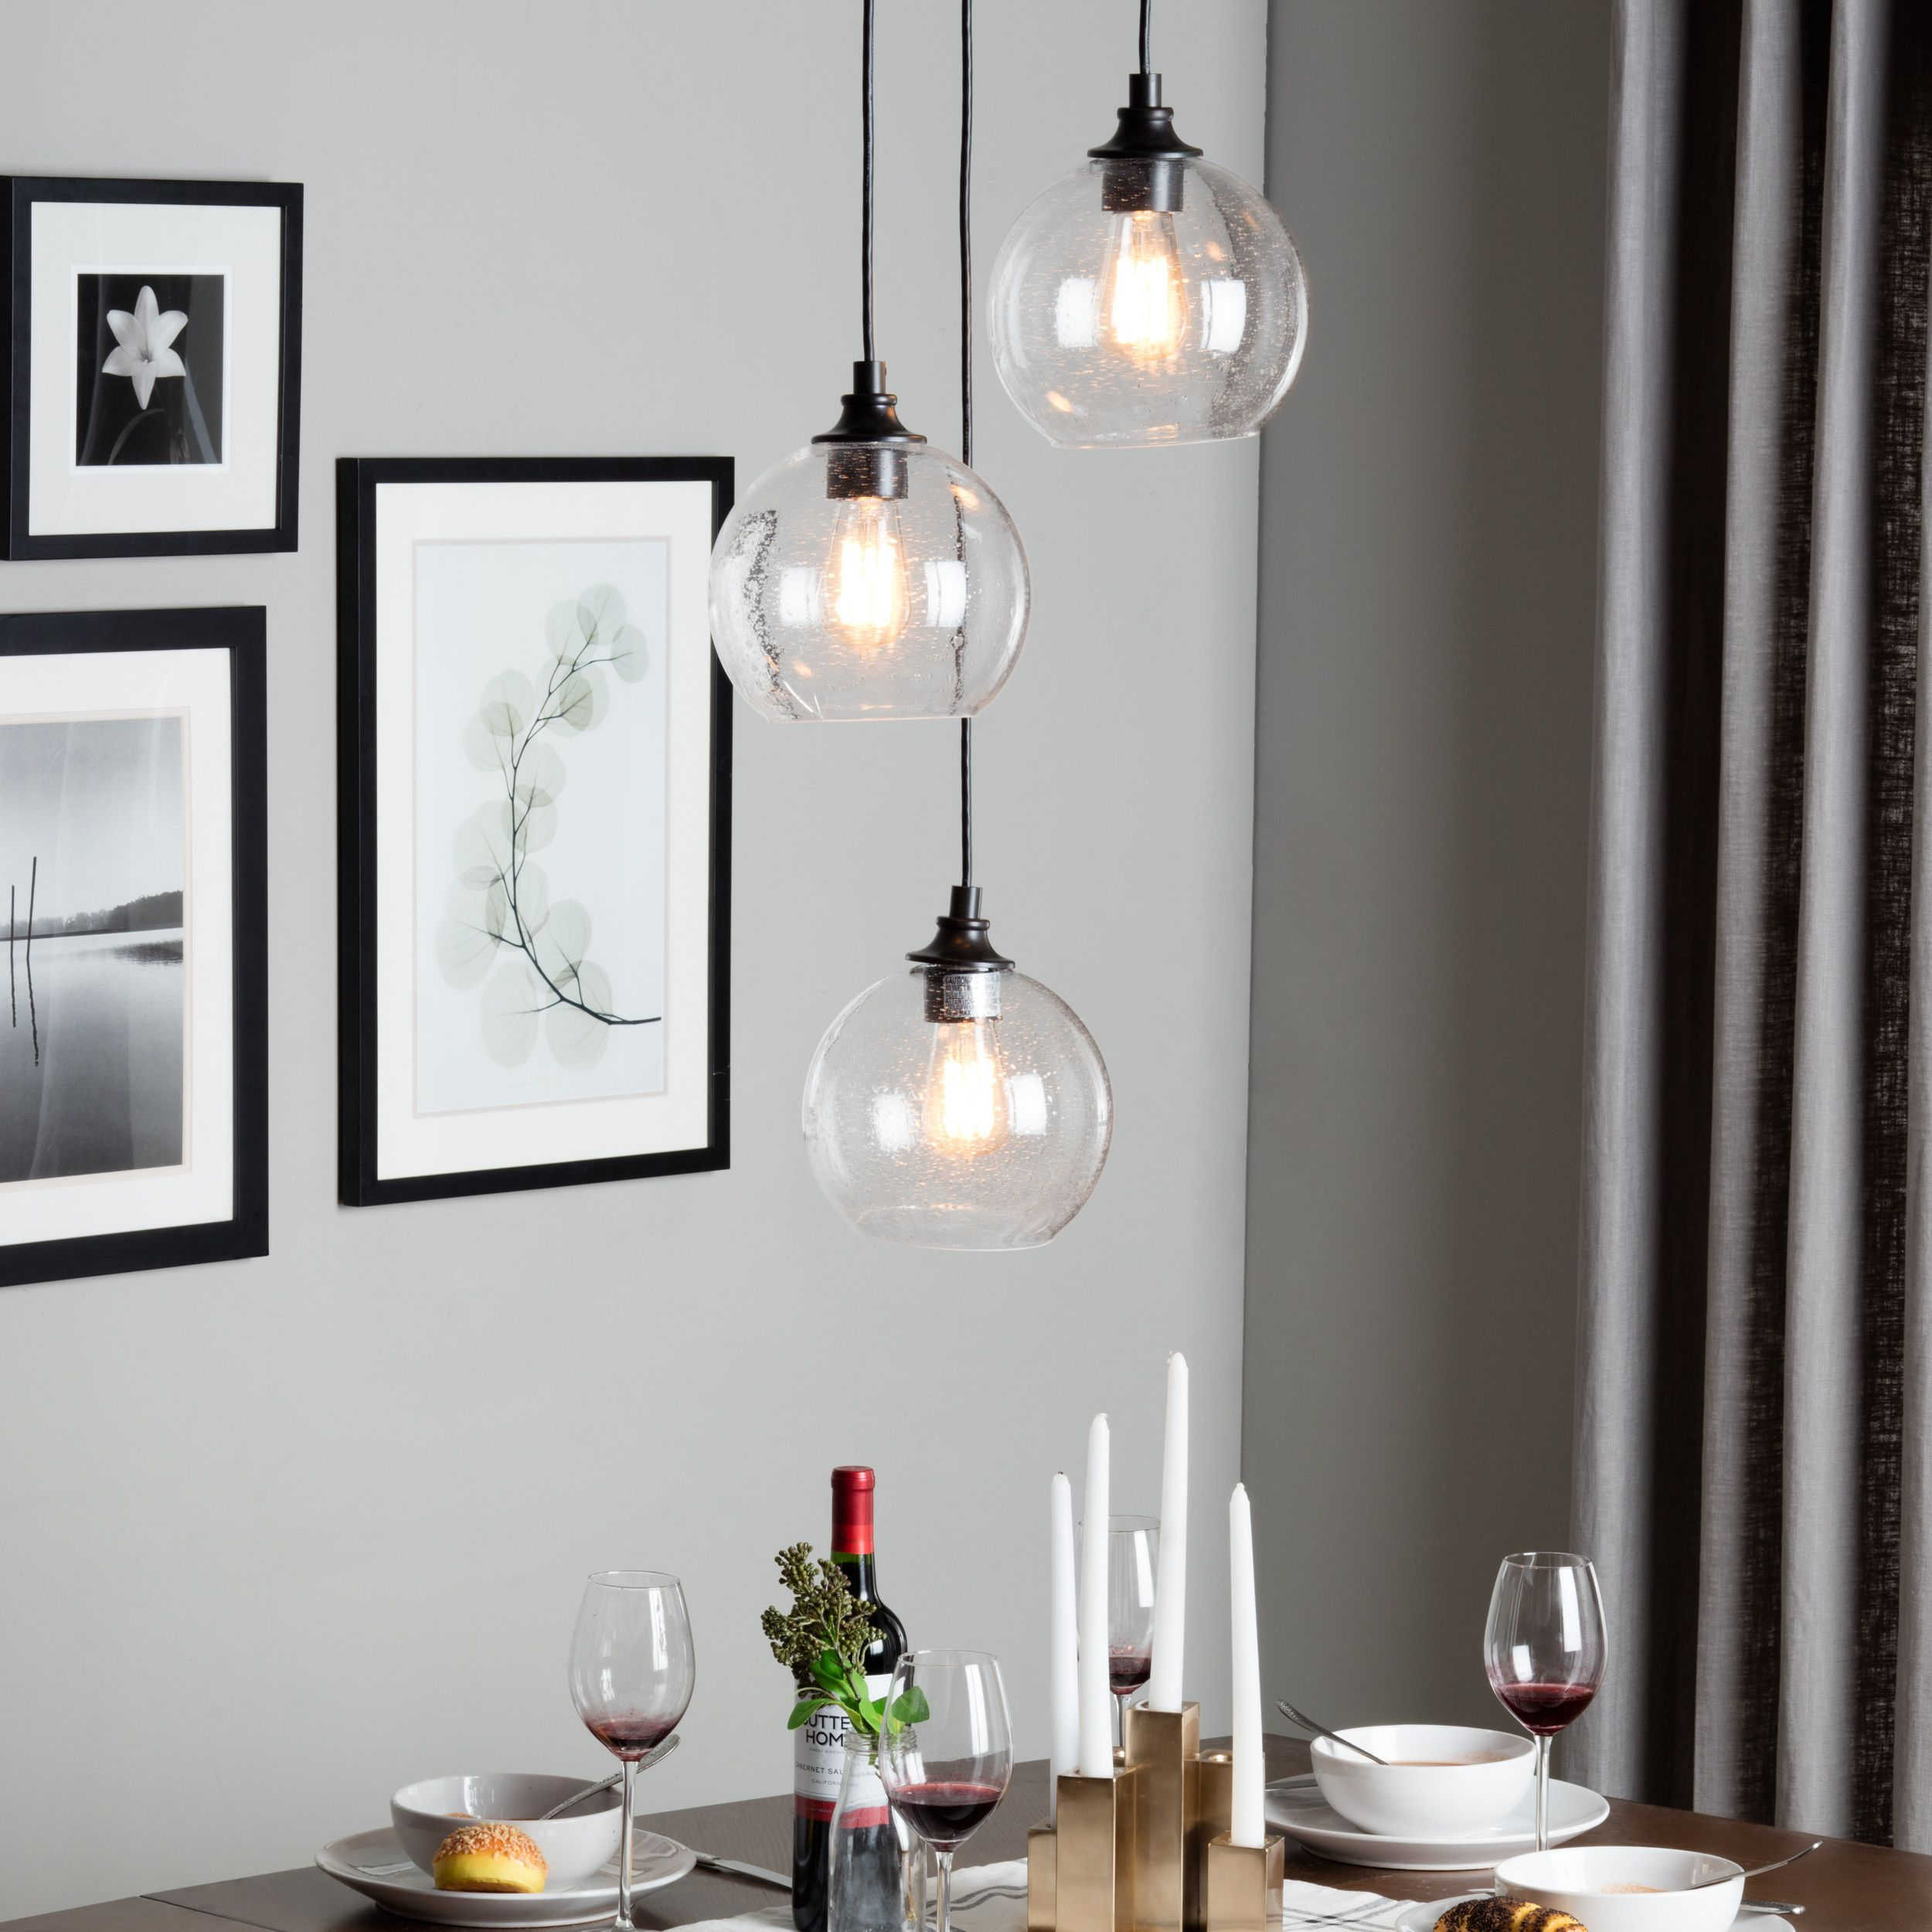 Luminaire Pendant 22 Best Ideas Of Pendant Lighting For Kitchen Dining Room